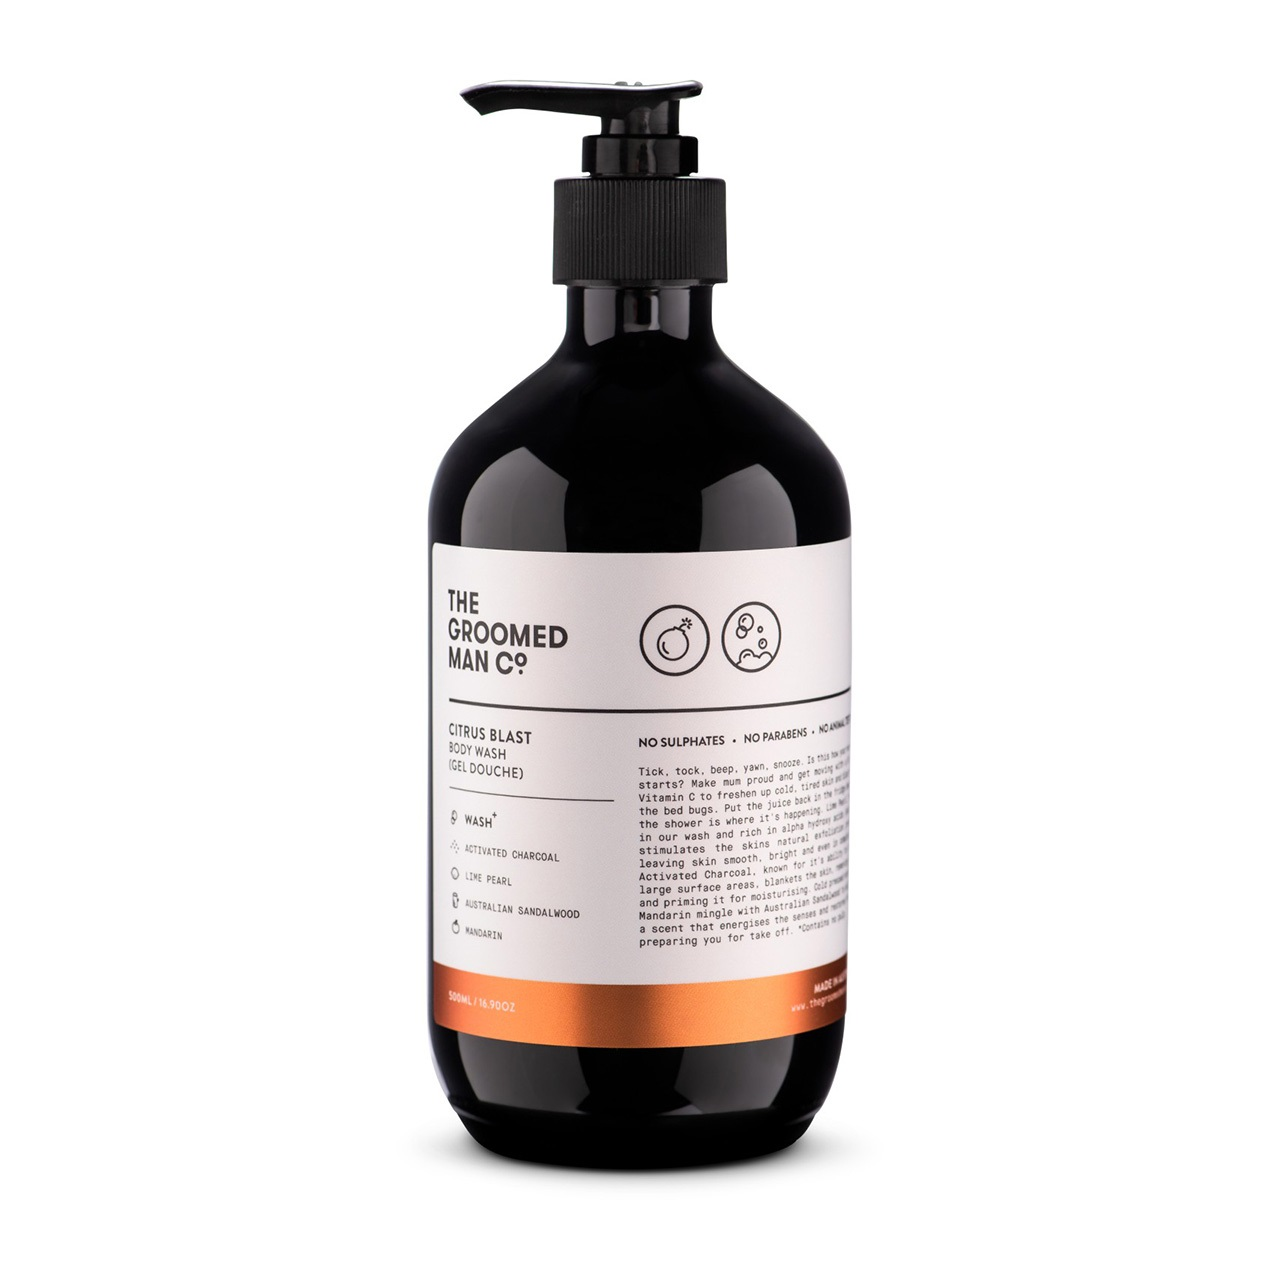 The Groomed Man Co. Citrus Blast Hand and Body Wash